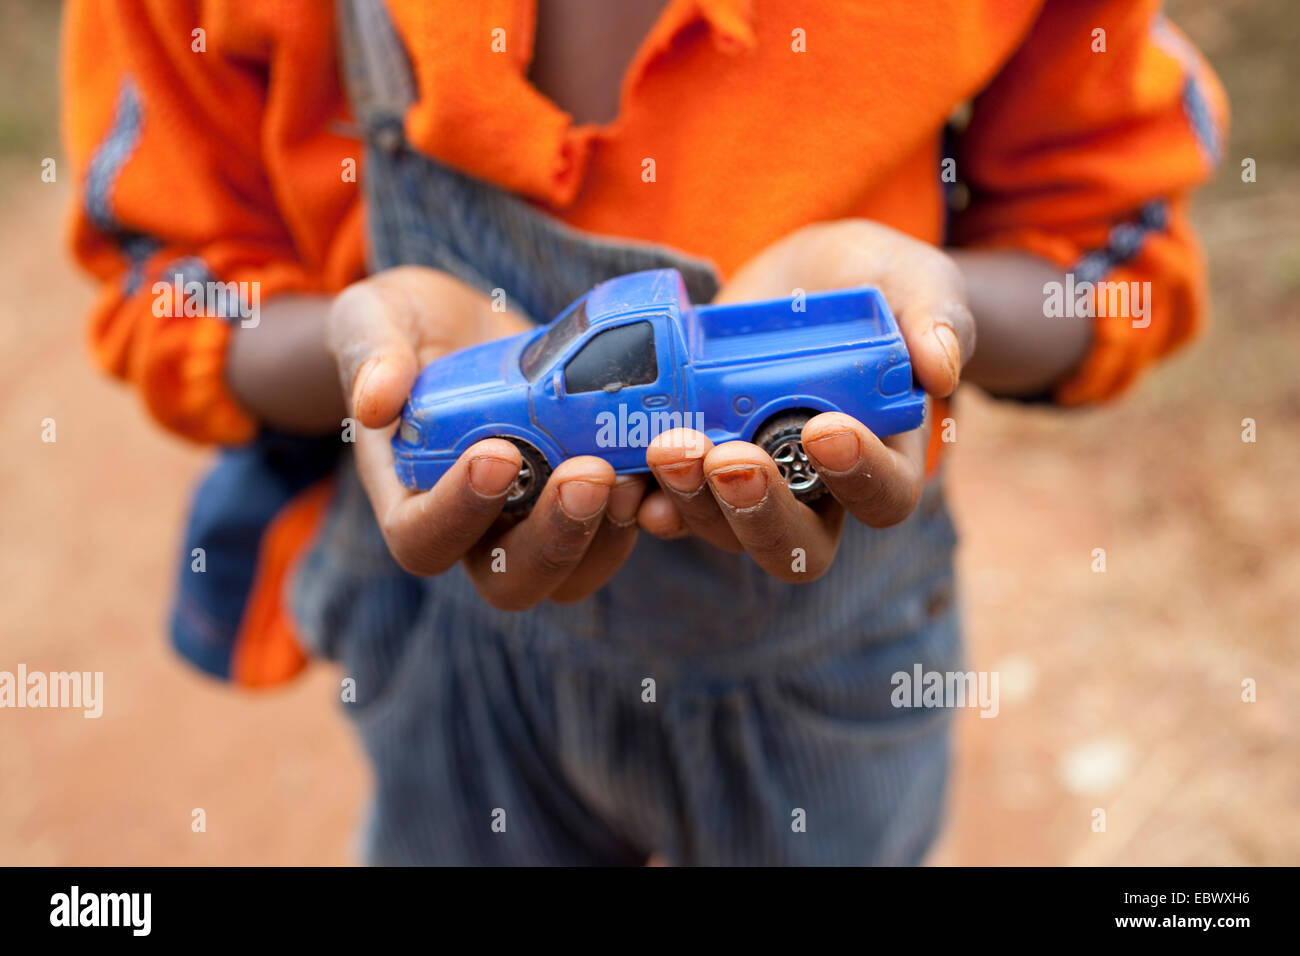 boy holding a blue toy car in his hands, Burundi, Karuzi, Buhiga - Stock Image